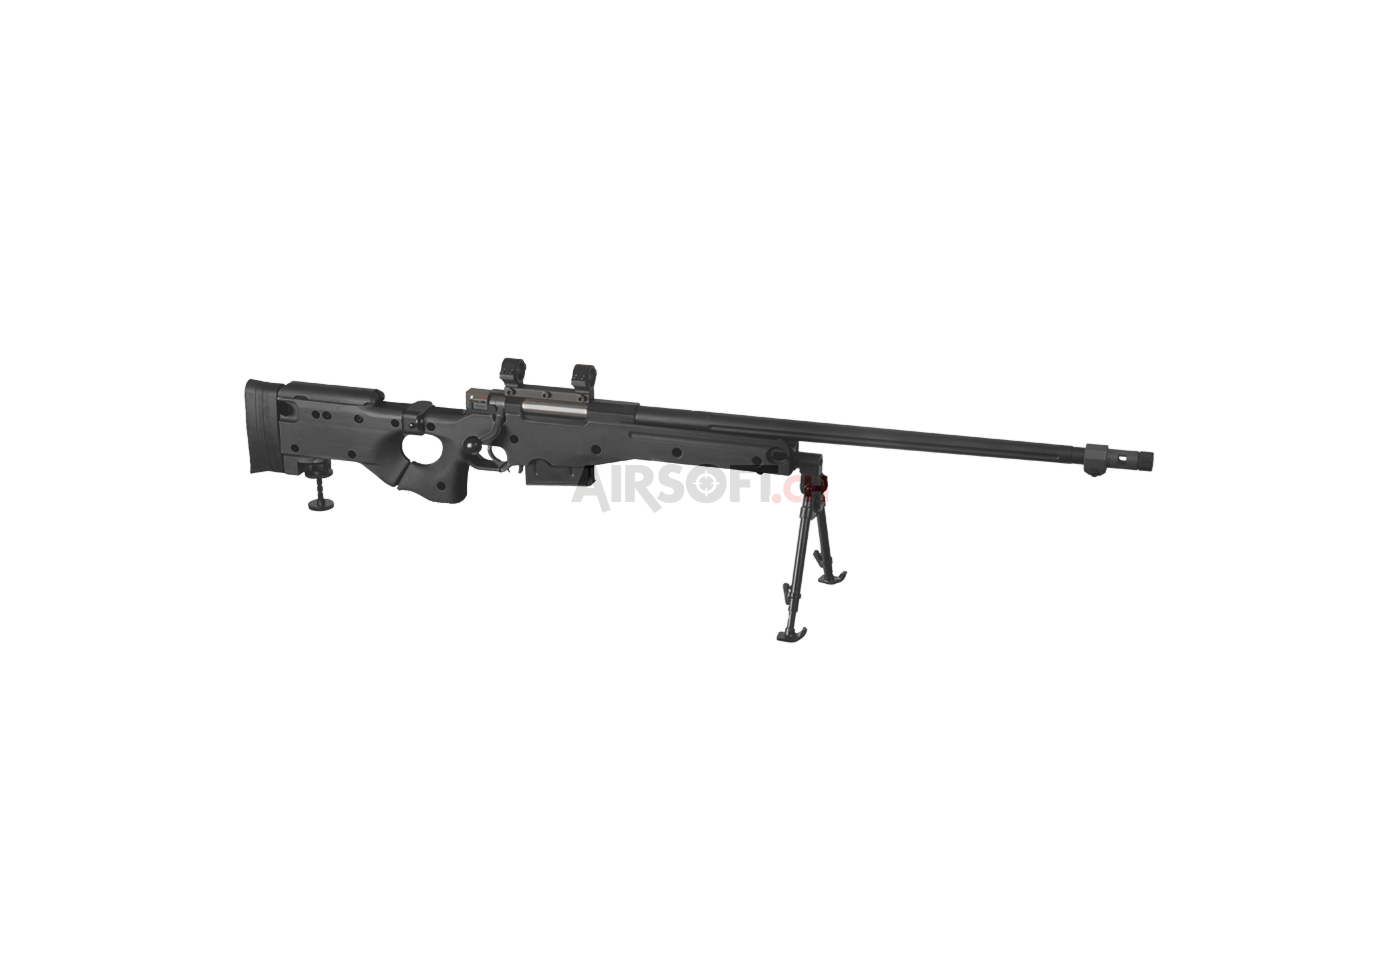 Ares vector aeg. Aw bolt action sniper